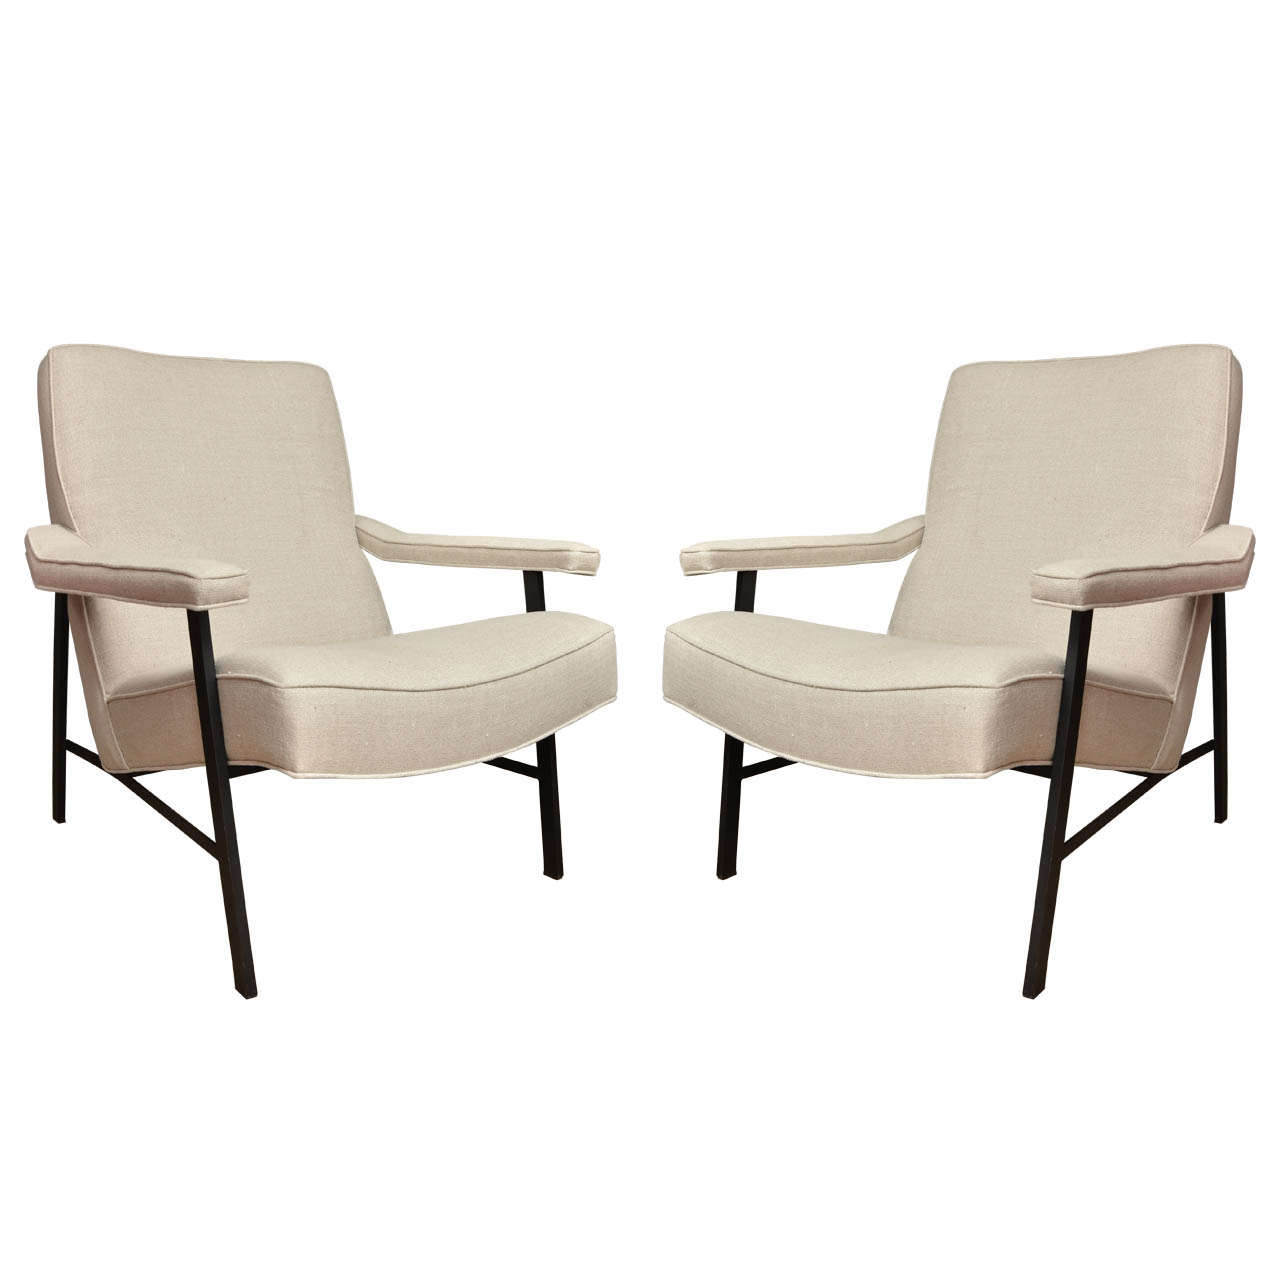 metal frame chairs design chair white pair of linen upholstered arm at 1stdibs